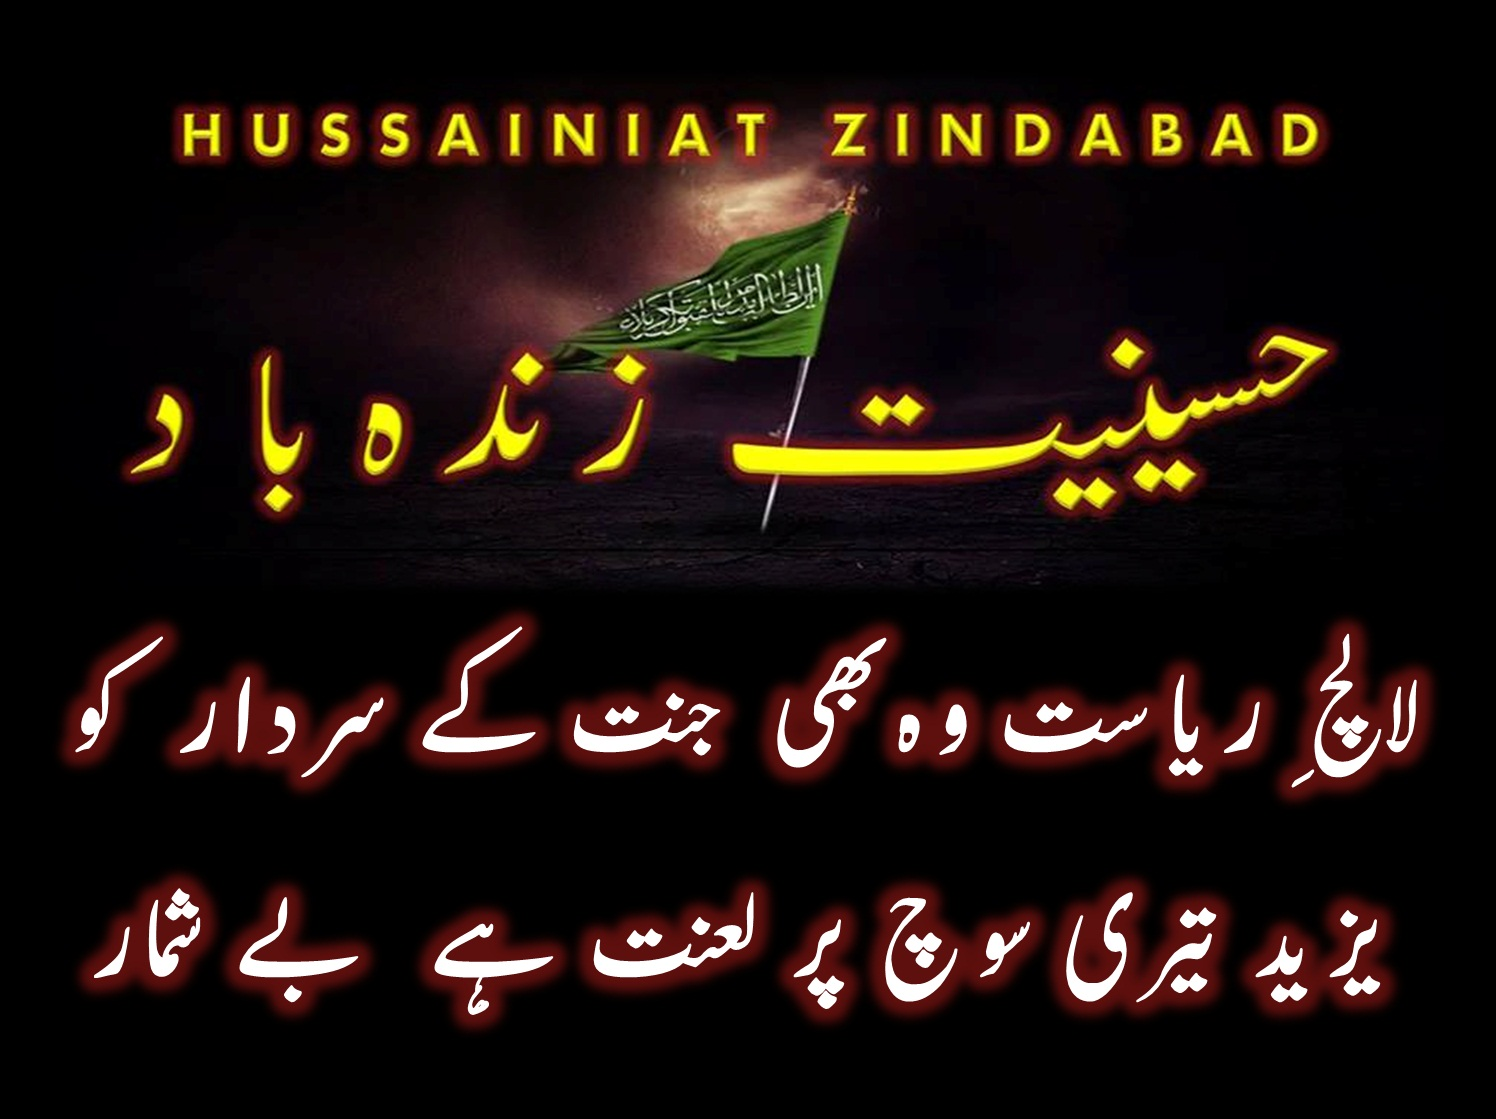 imam hussain karbala poetry - photo #21